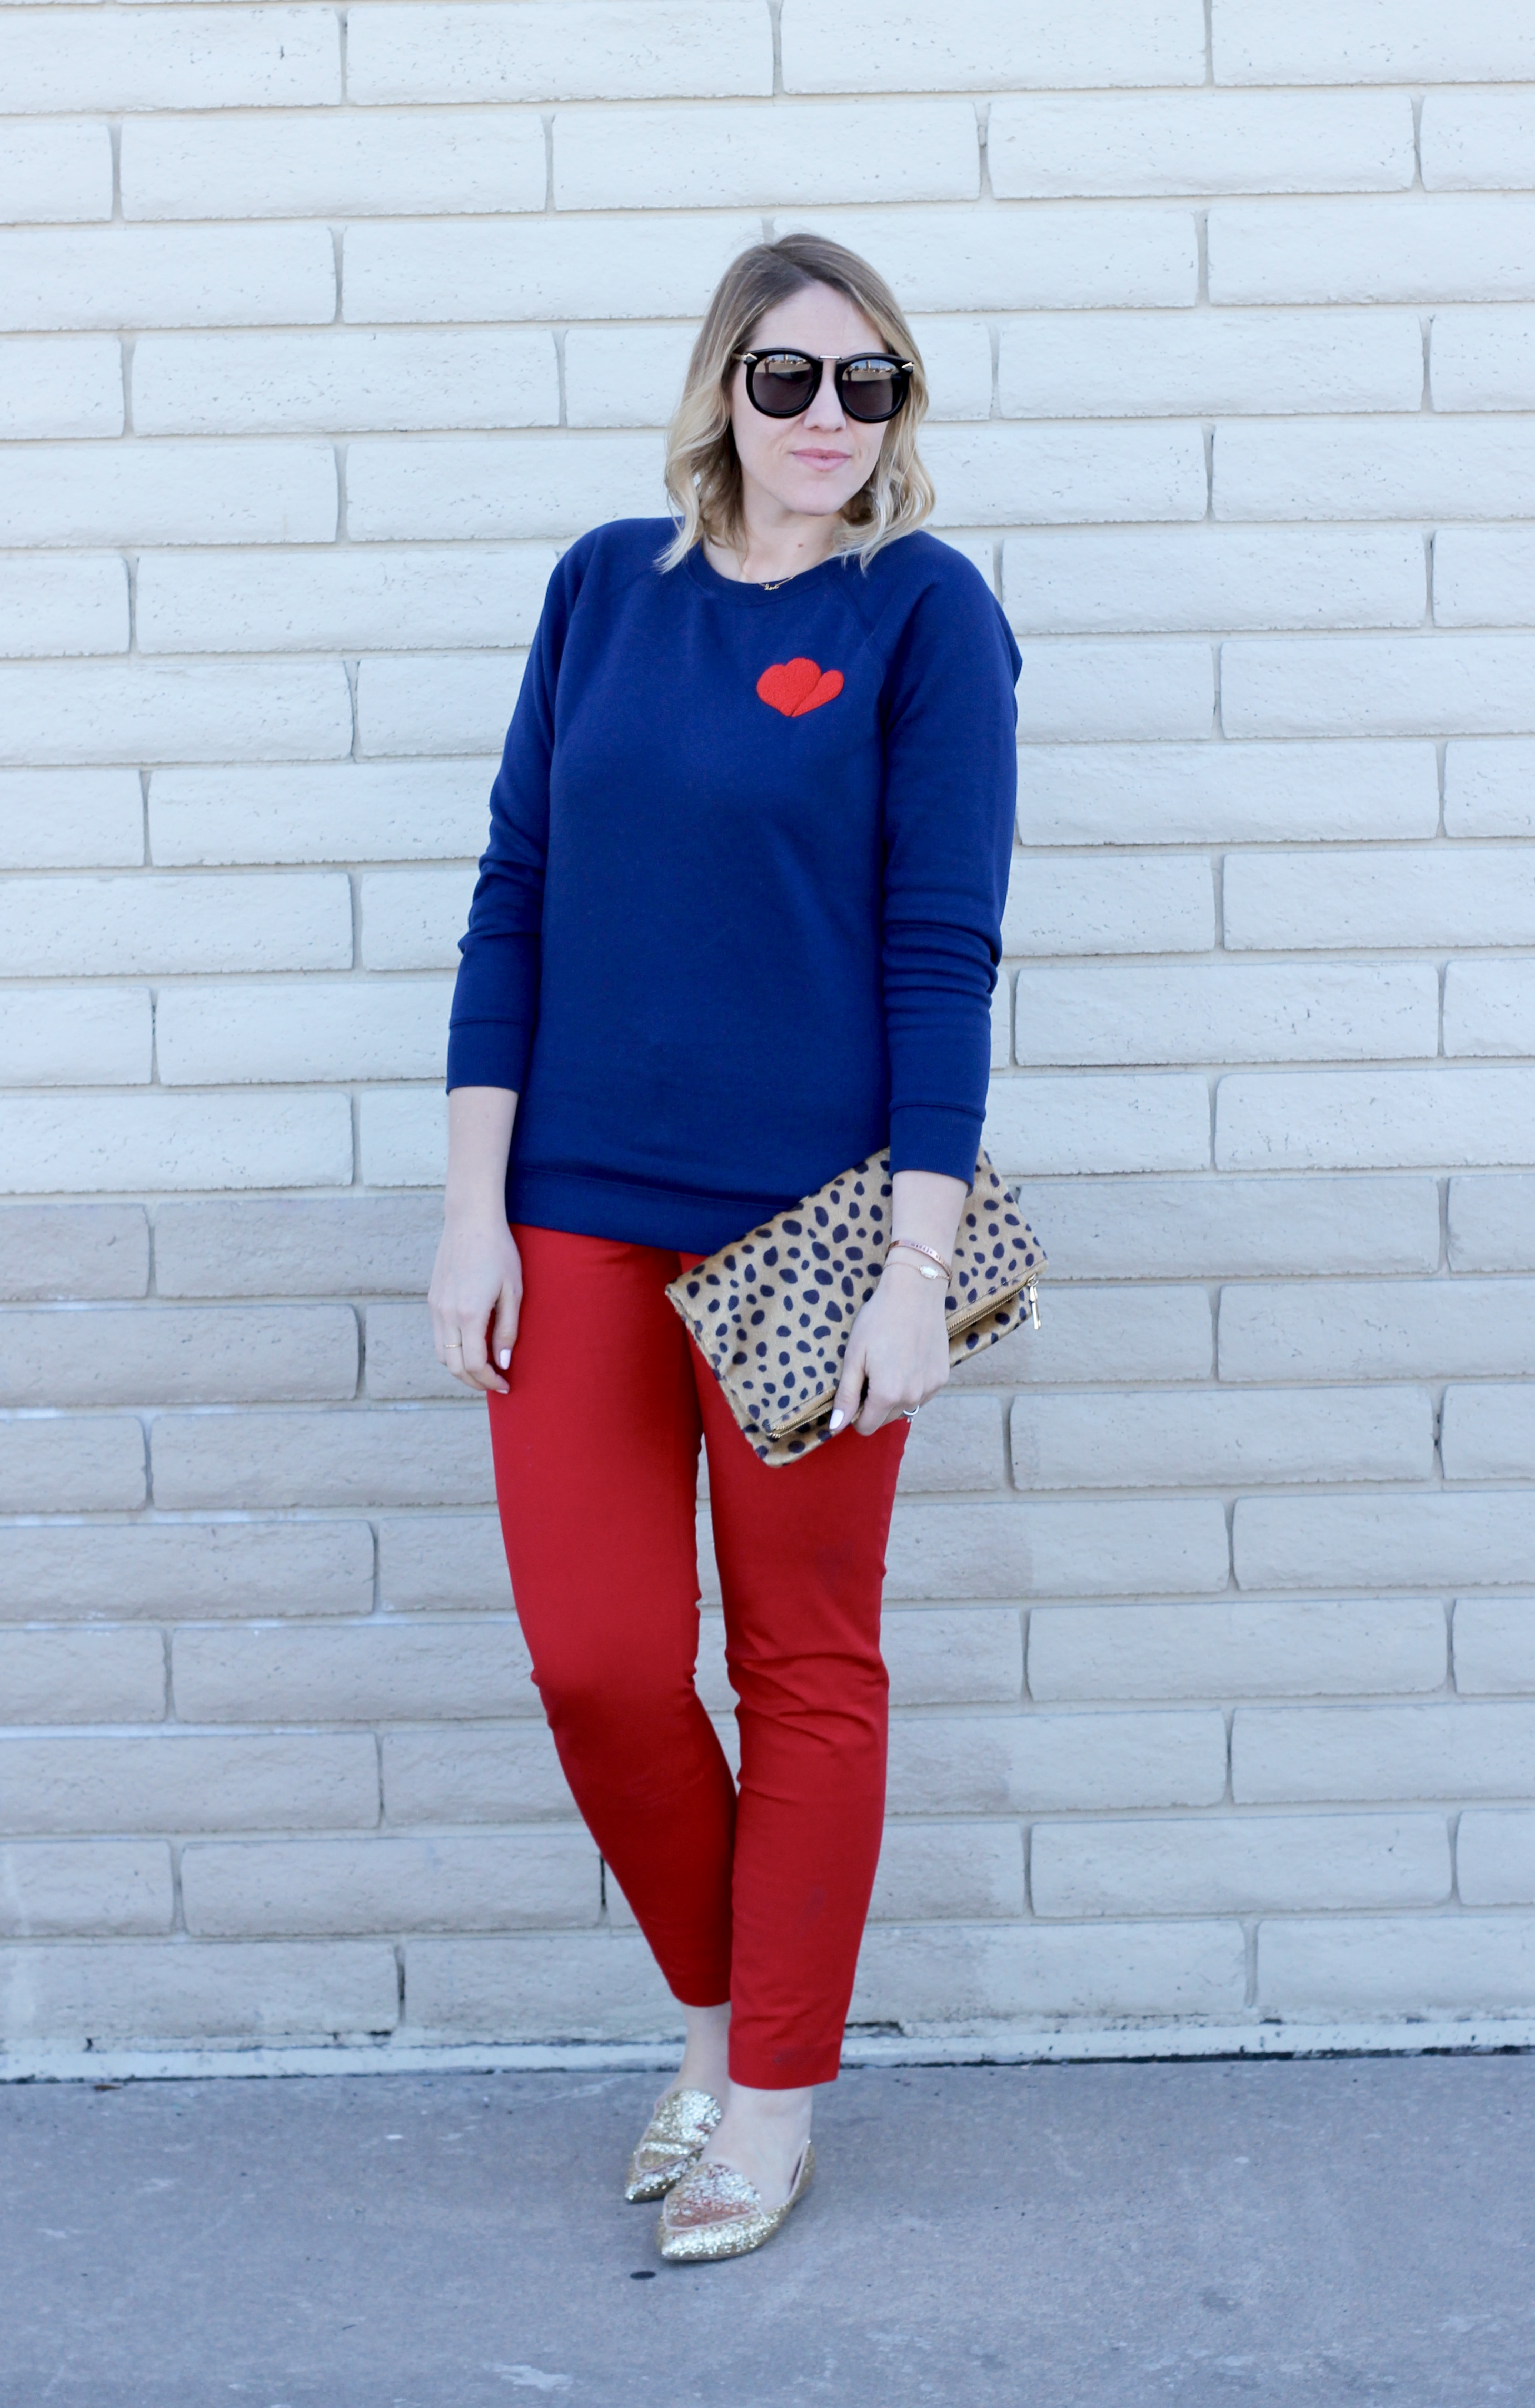 valentines day outfit ideas #valentinesday #valentinesoutfit #holidaystyle